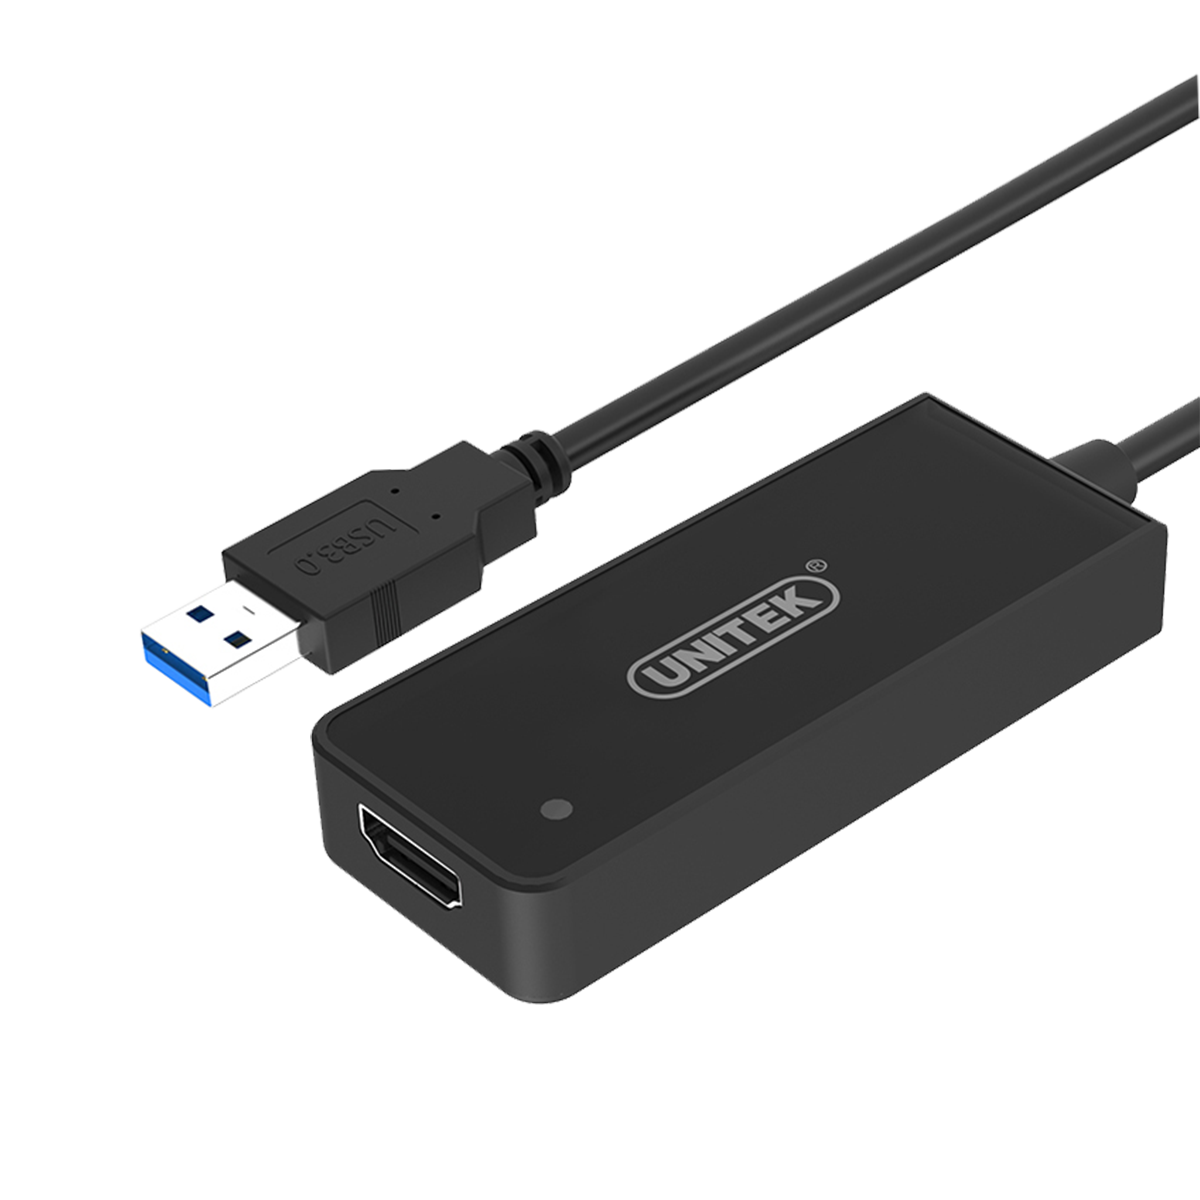 Y-3702 USB3.0 to HDMI 轉接器